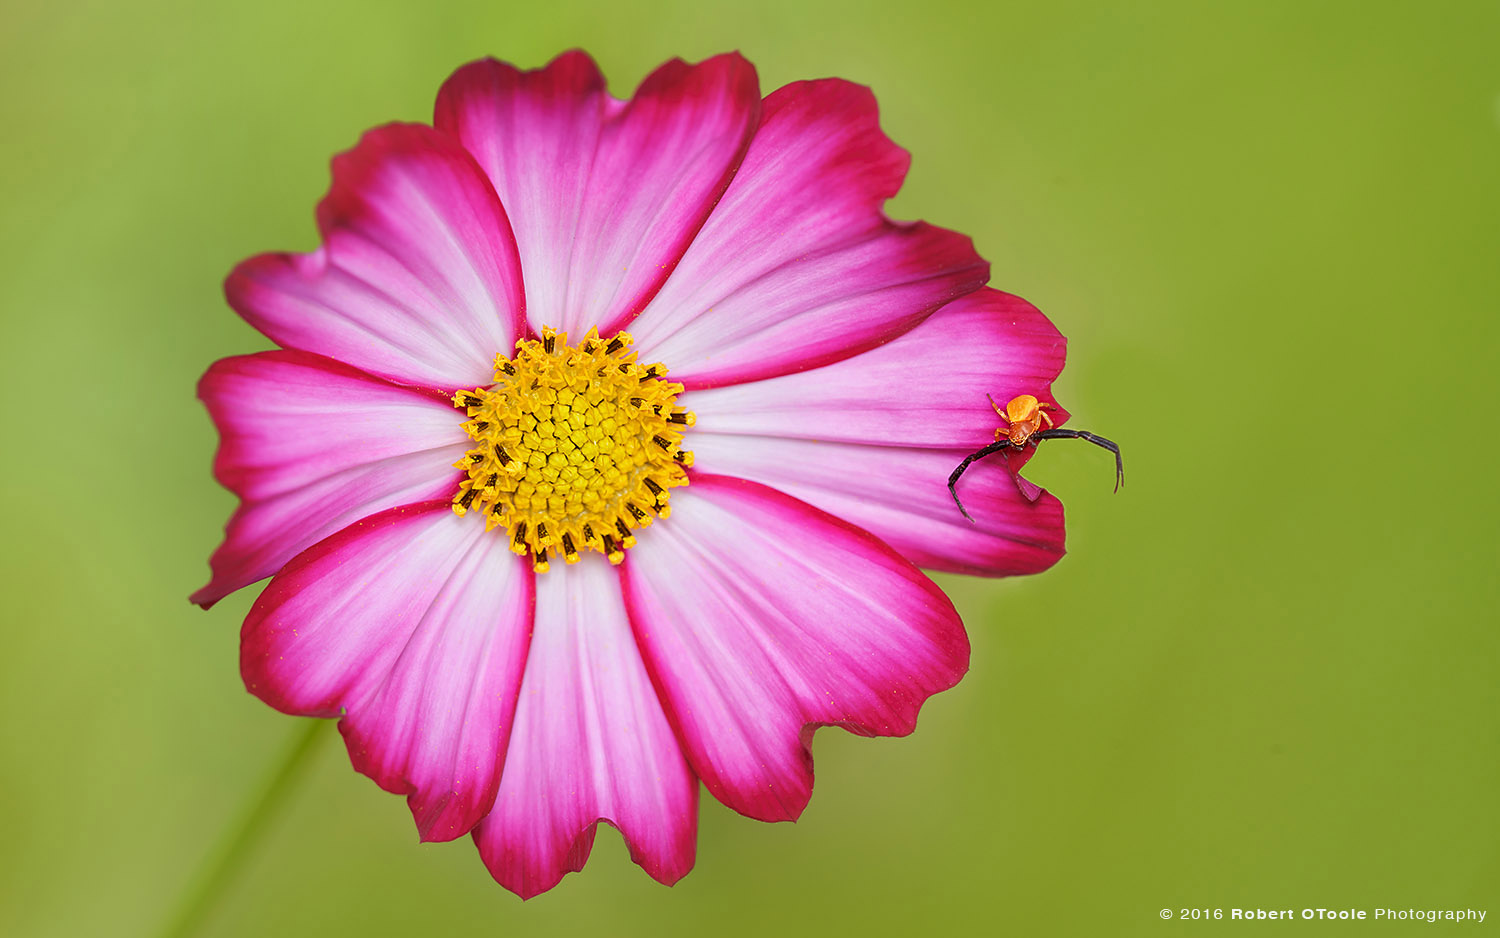 Male Crab Spider on Bicolor Pink Cosmos Flower in California